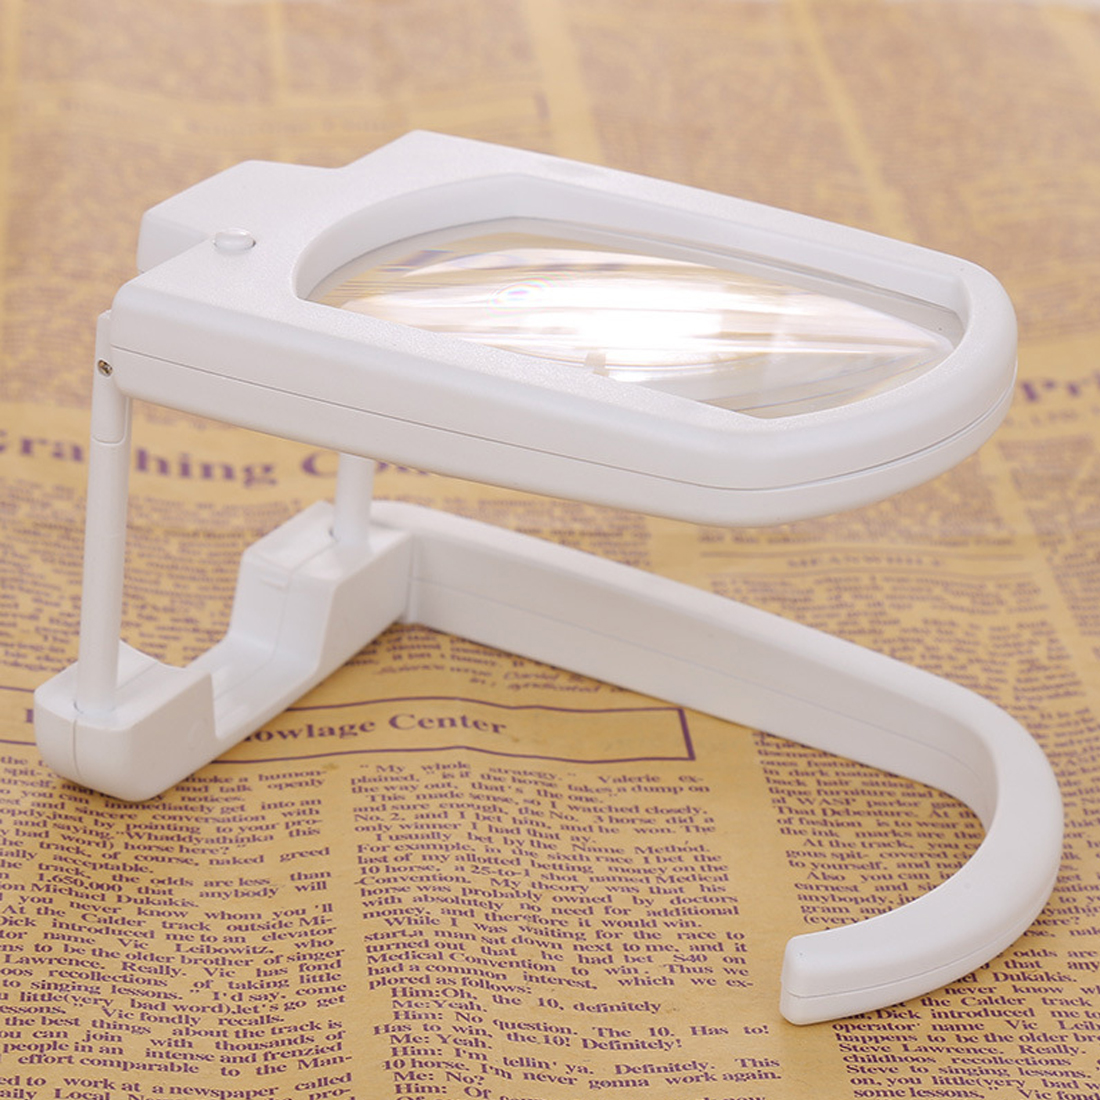 Top Multifunctional Magnifier Foldable Loupe Microscope With Light Magnifying Tool Portable Magnifying Glass 3X Magnification